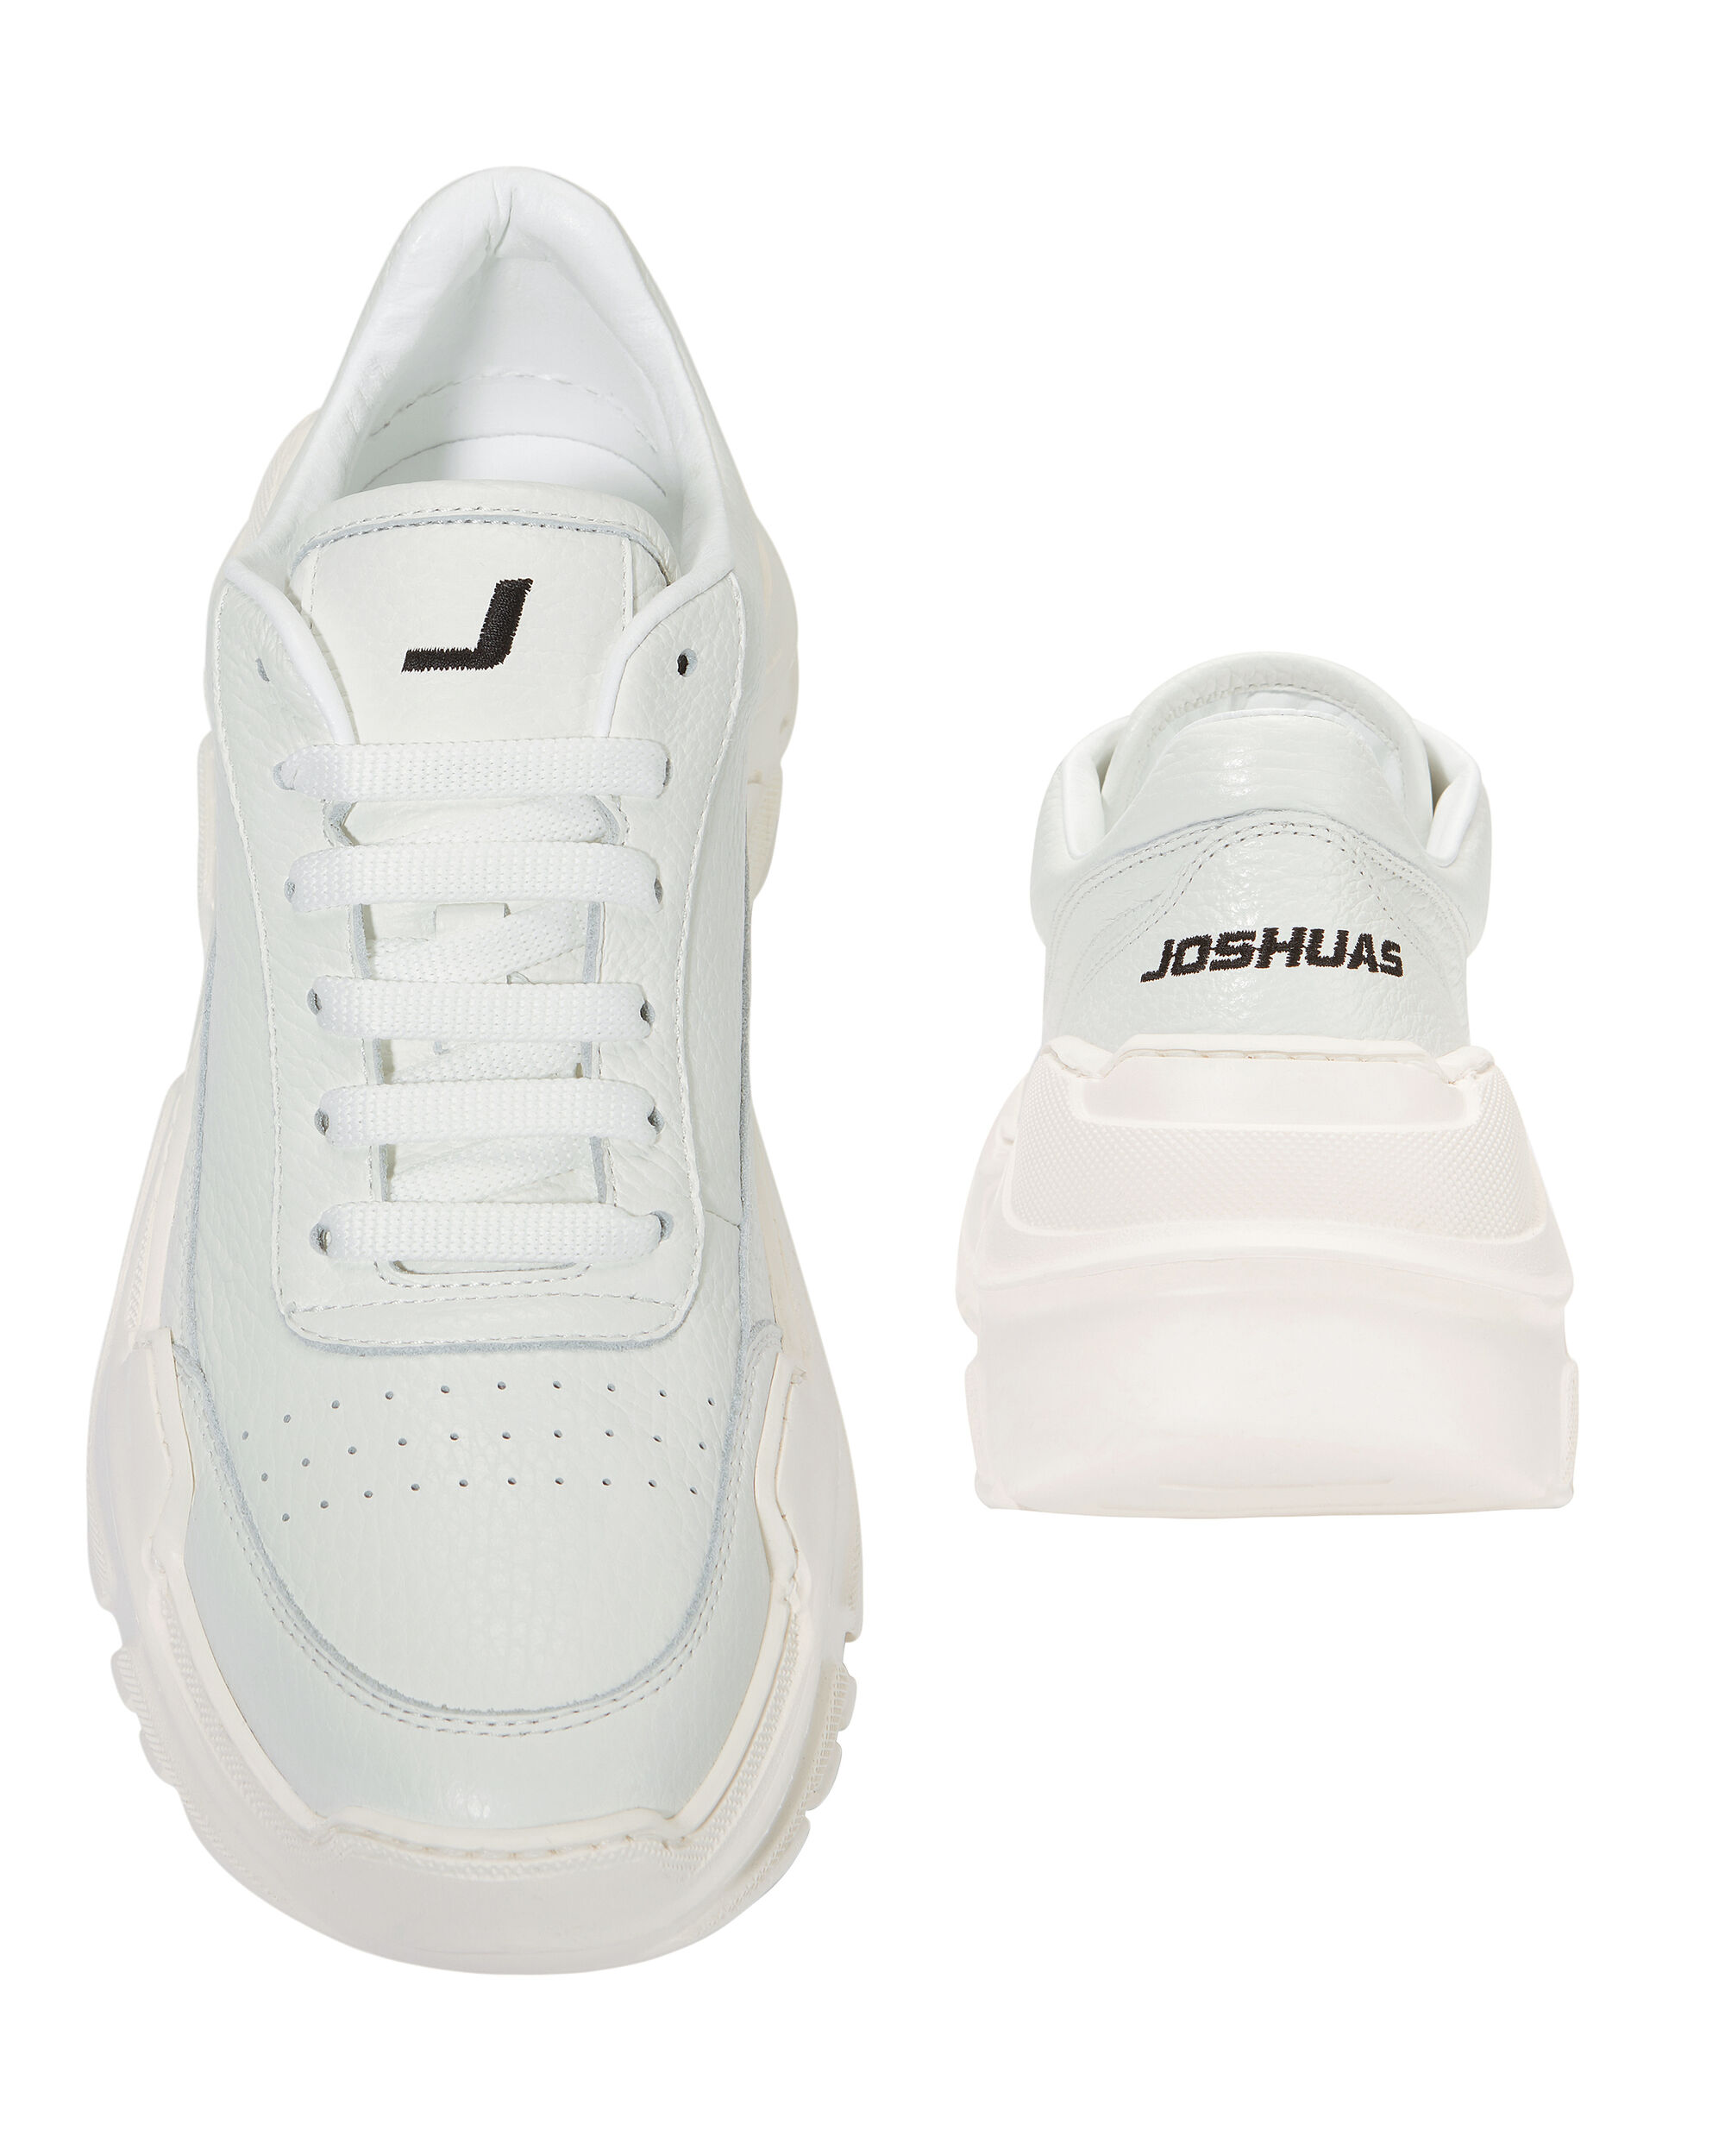 Zenith Low-Top White Sneakers, WHITE, hi-res